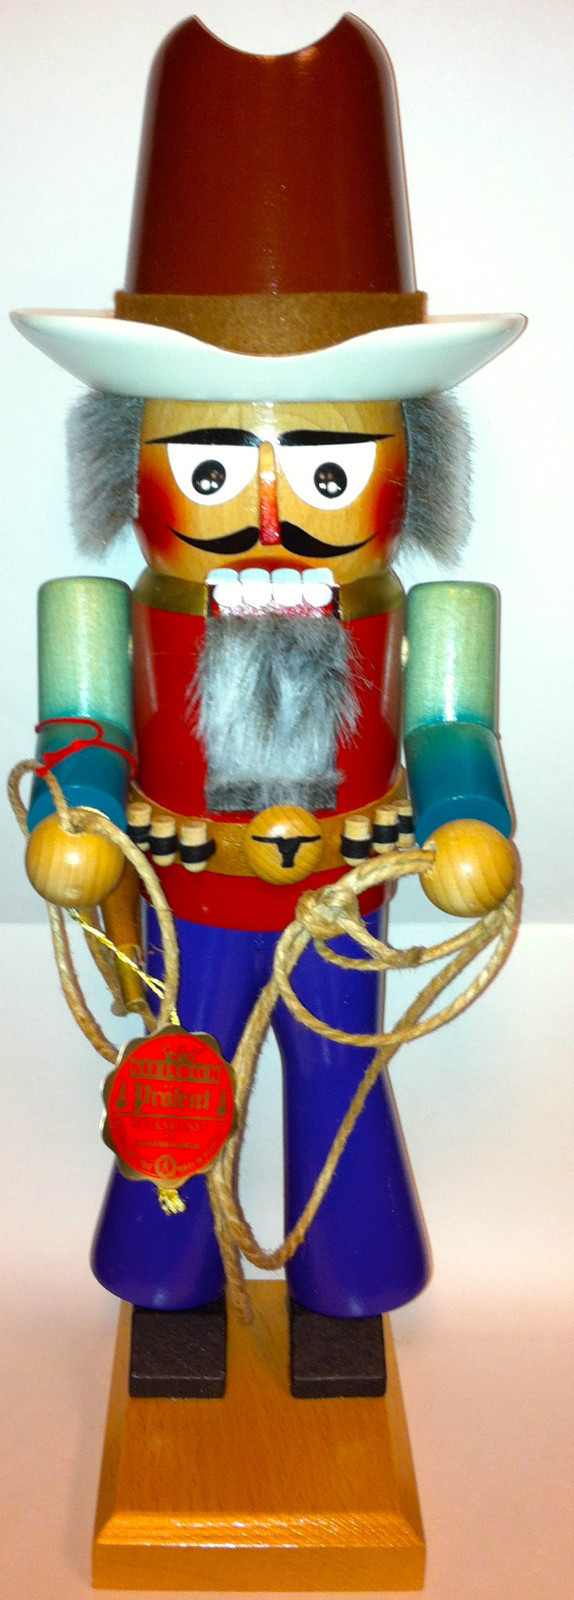 steinbach men Buy beautiful and authentic german christmas nutcrackers - the exclusive online shop for premium handcrafts made in germany 100% original erzgebirge.